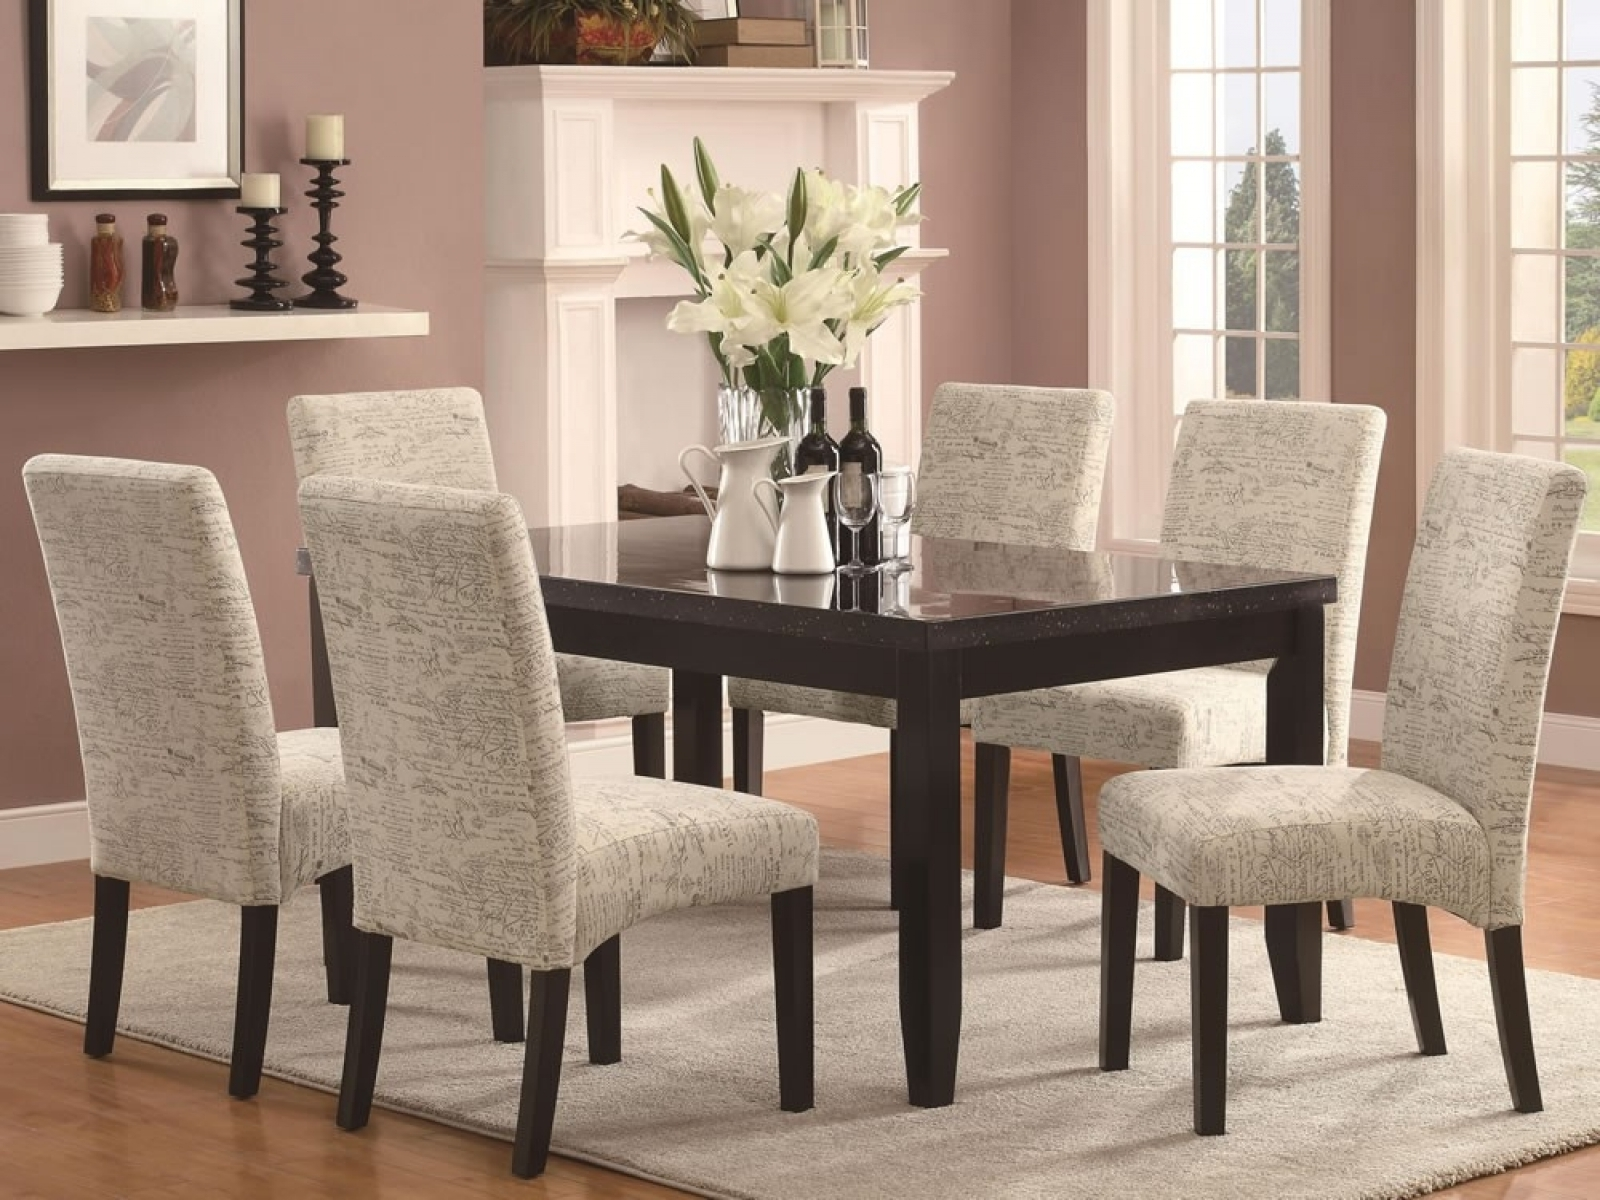 Preferred Fabric Dining Room Chairs With Regard To Fancy Dining Room With Upholstered Dining Chair Also Wood Dining (Gallery 4 of 25)